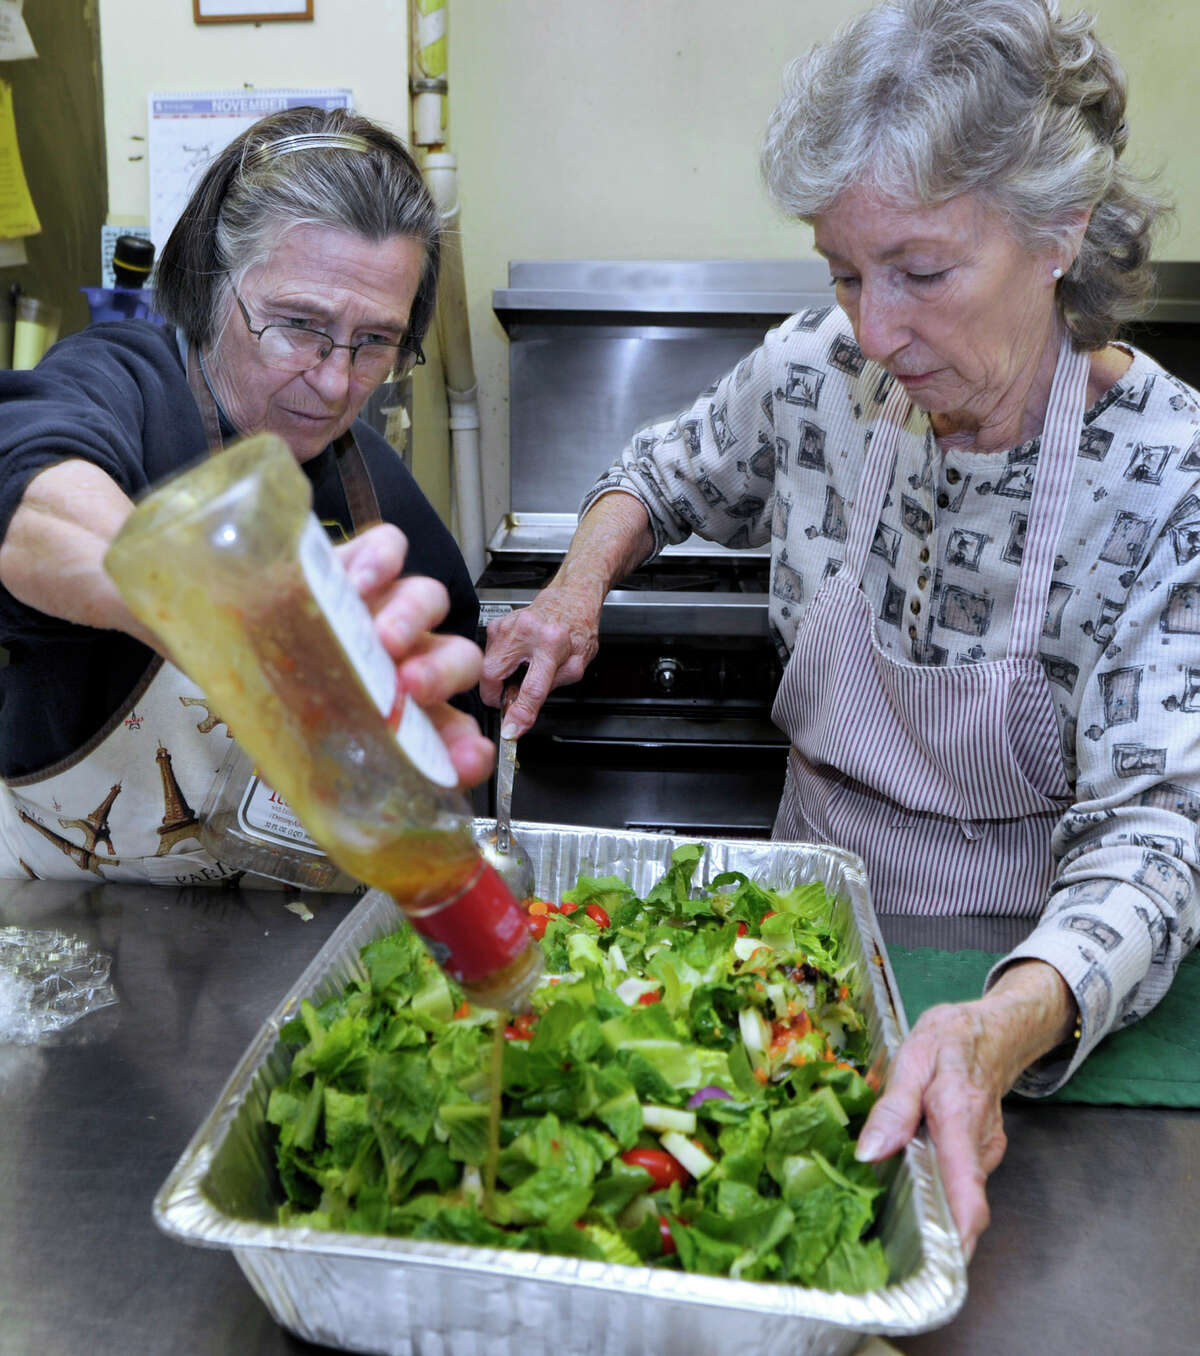 Rita Crimi, left, and Betty Ballard, both of Danbury, serve the afternoon meal at the Dorothy Day Hospitality House on Spring Street in Danbury, Tuesday, Nov. 27, 2012.